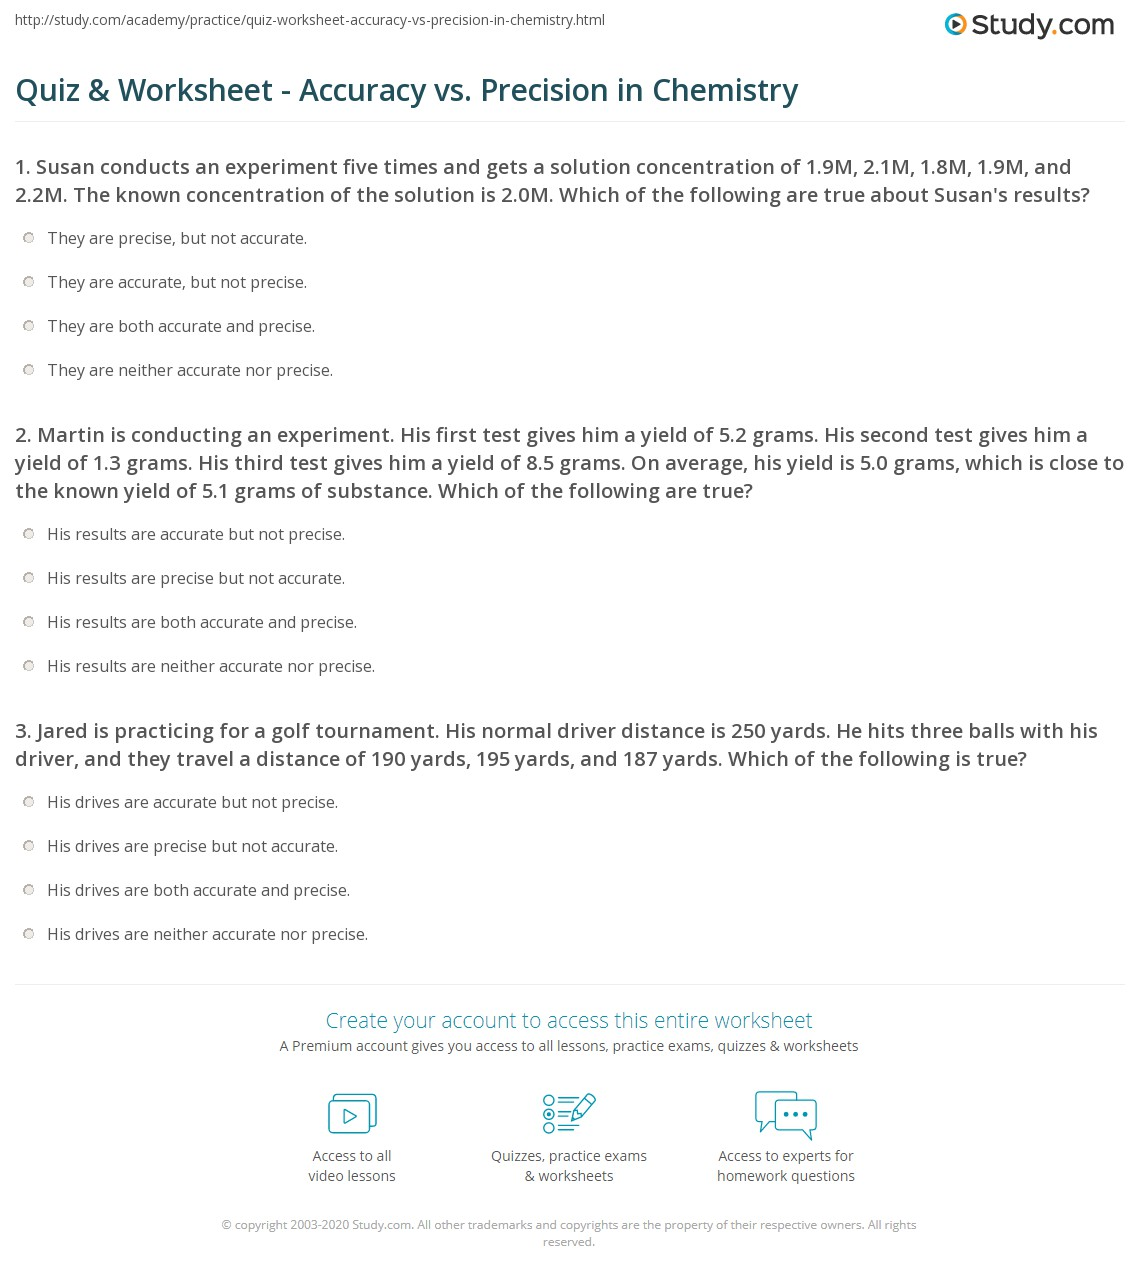 worksheet Accuracy Vs Precision Worksheet quiz worksheet accuracy vs precision in chemistry study com 1 martin is conducting an experiment his first test gives him a yield of 5 2 grams second 3 grams